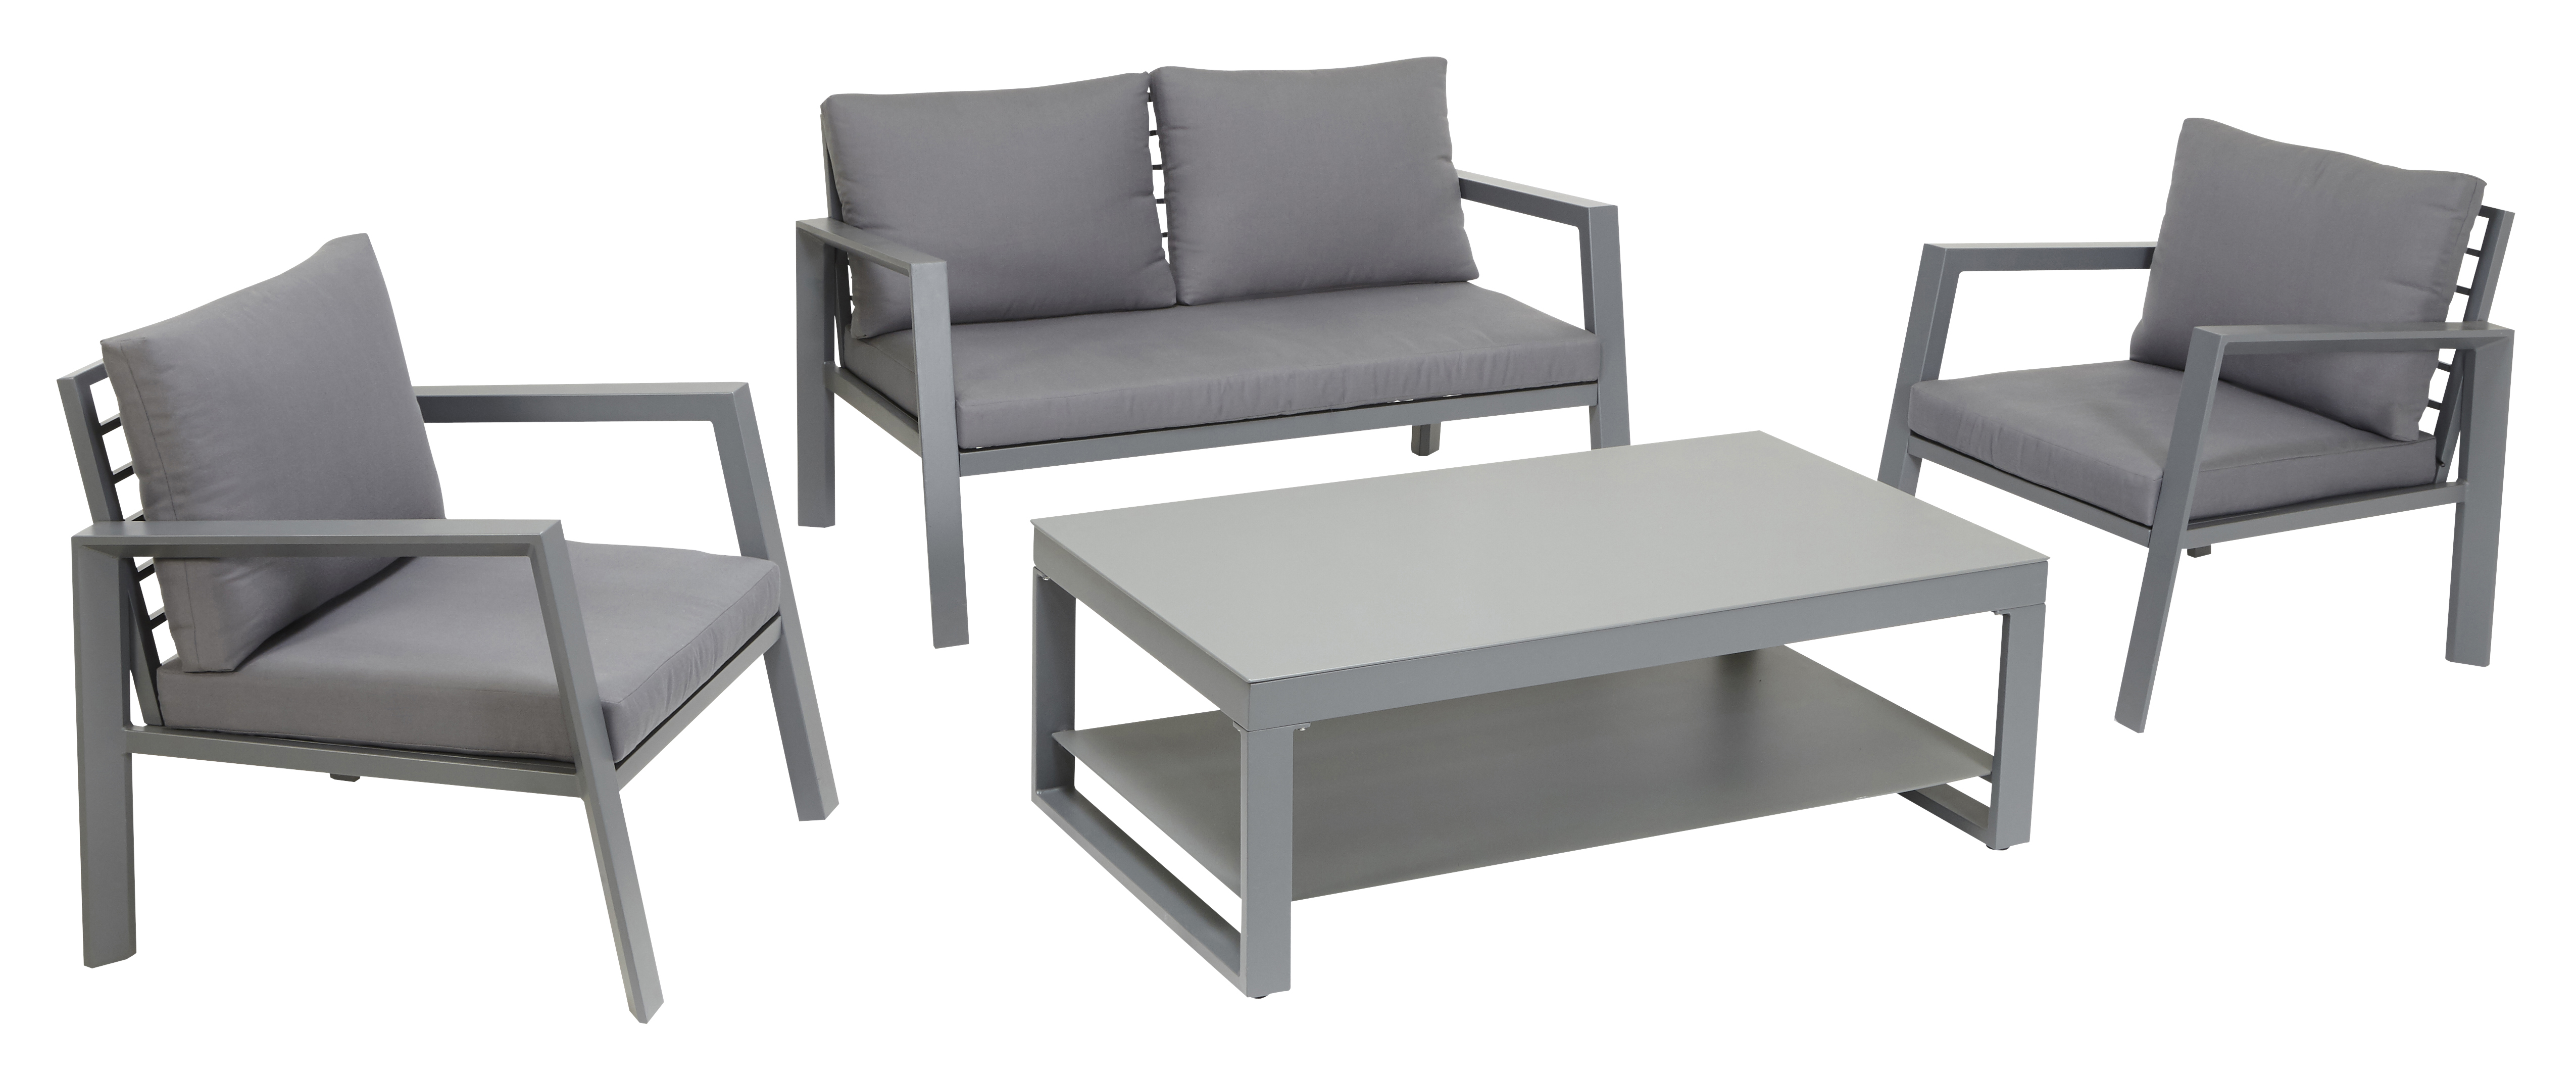 Salon Bas De Jardin Canberra 4 Pieces Gris